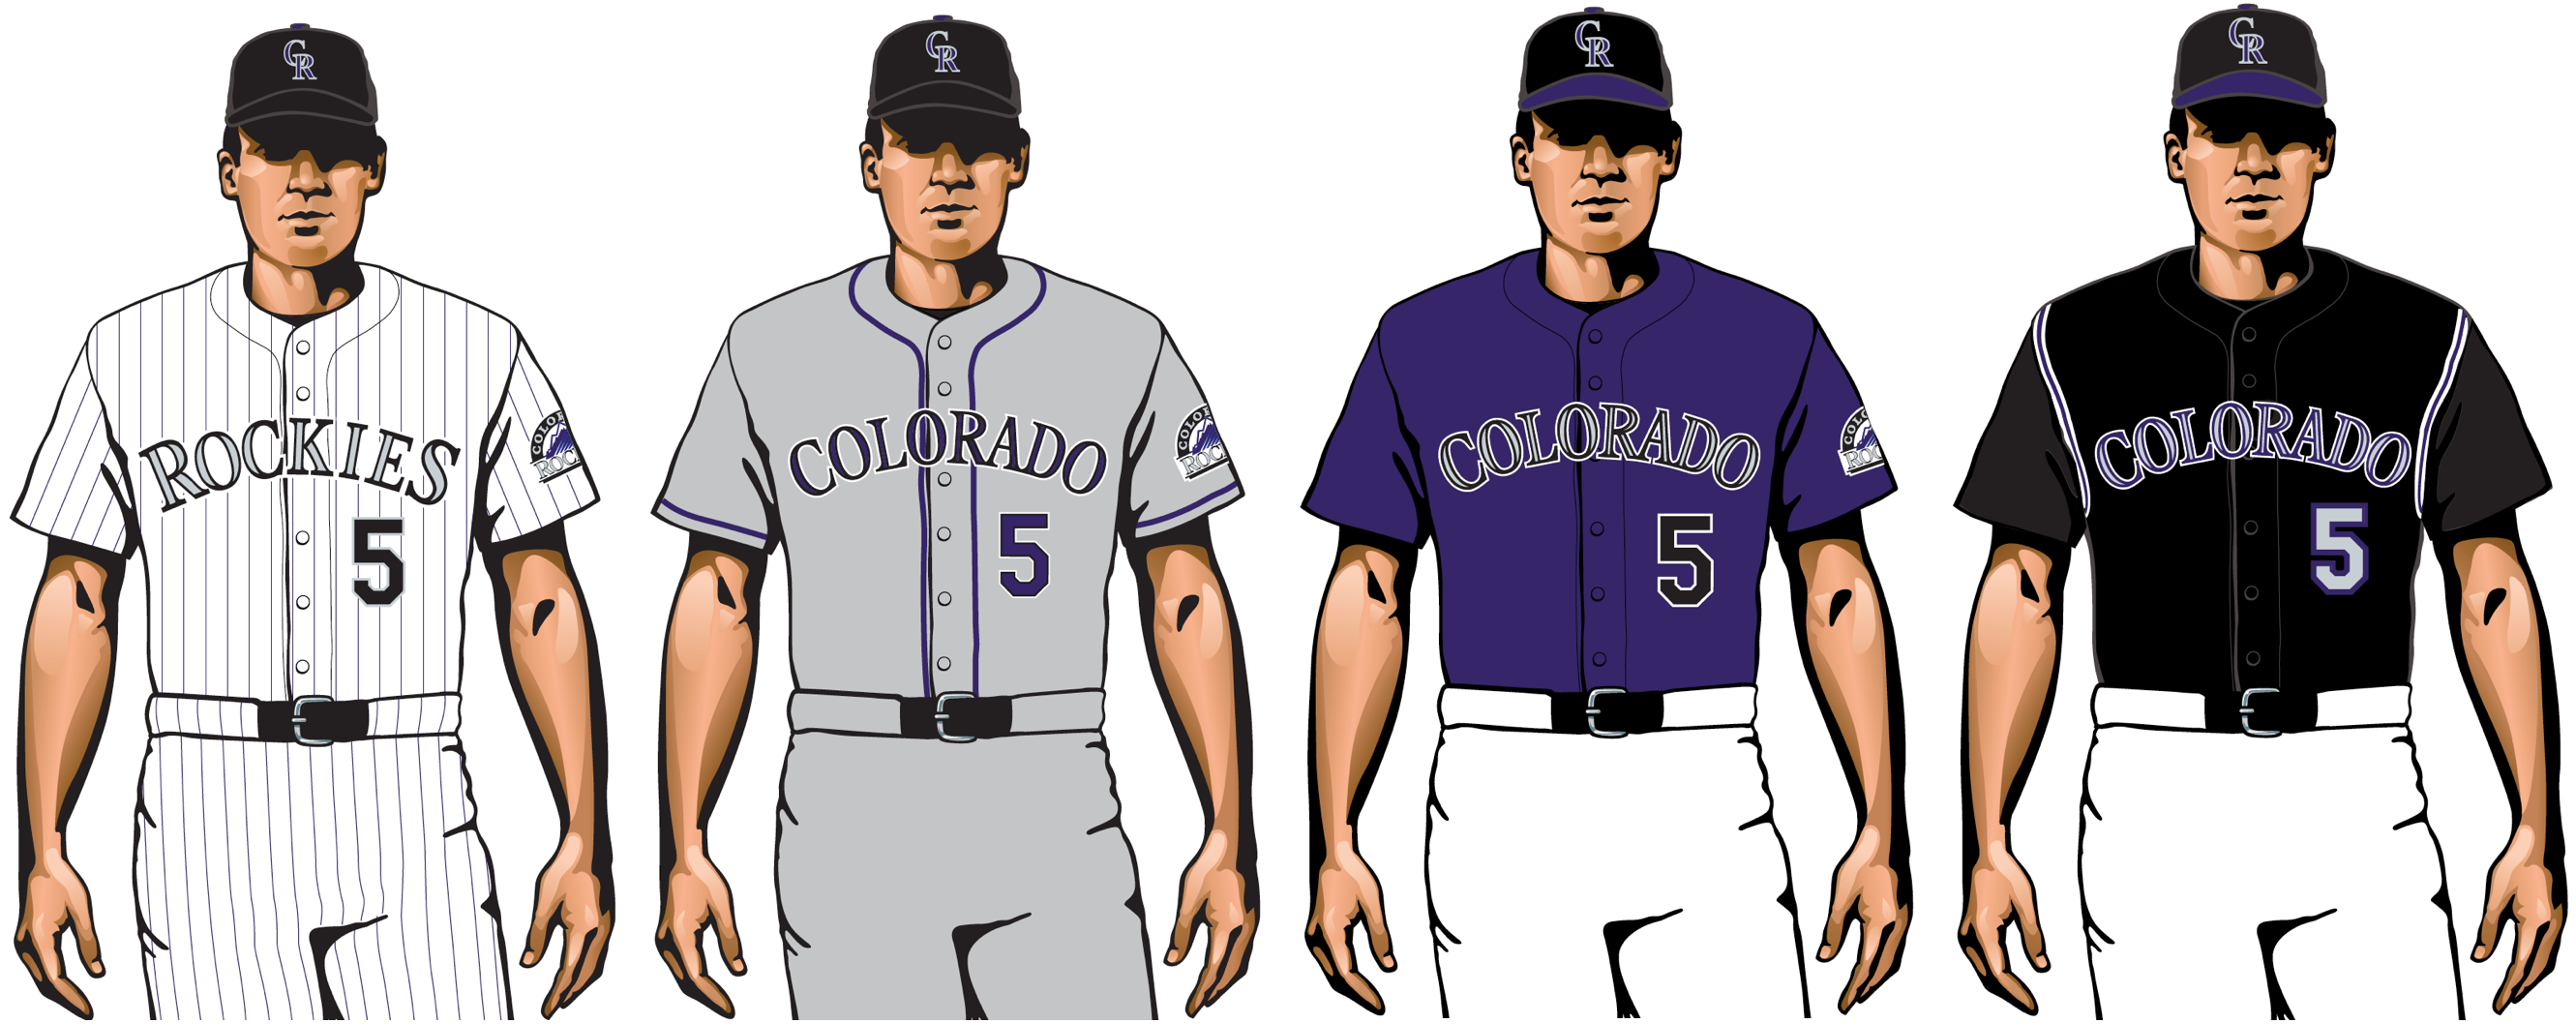 colorado rockies 2020 uniforms